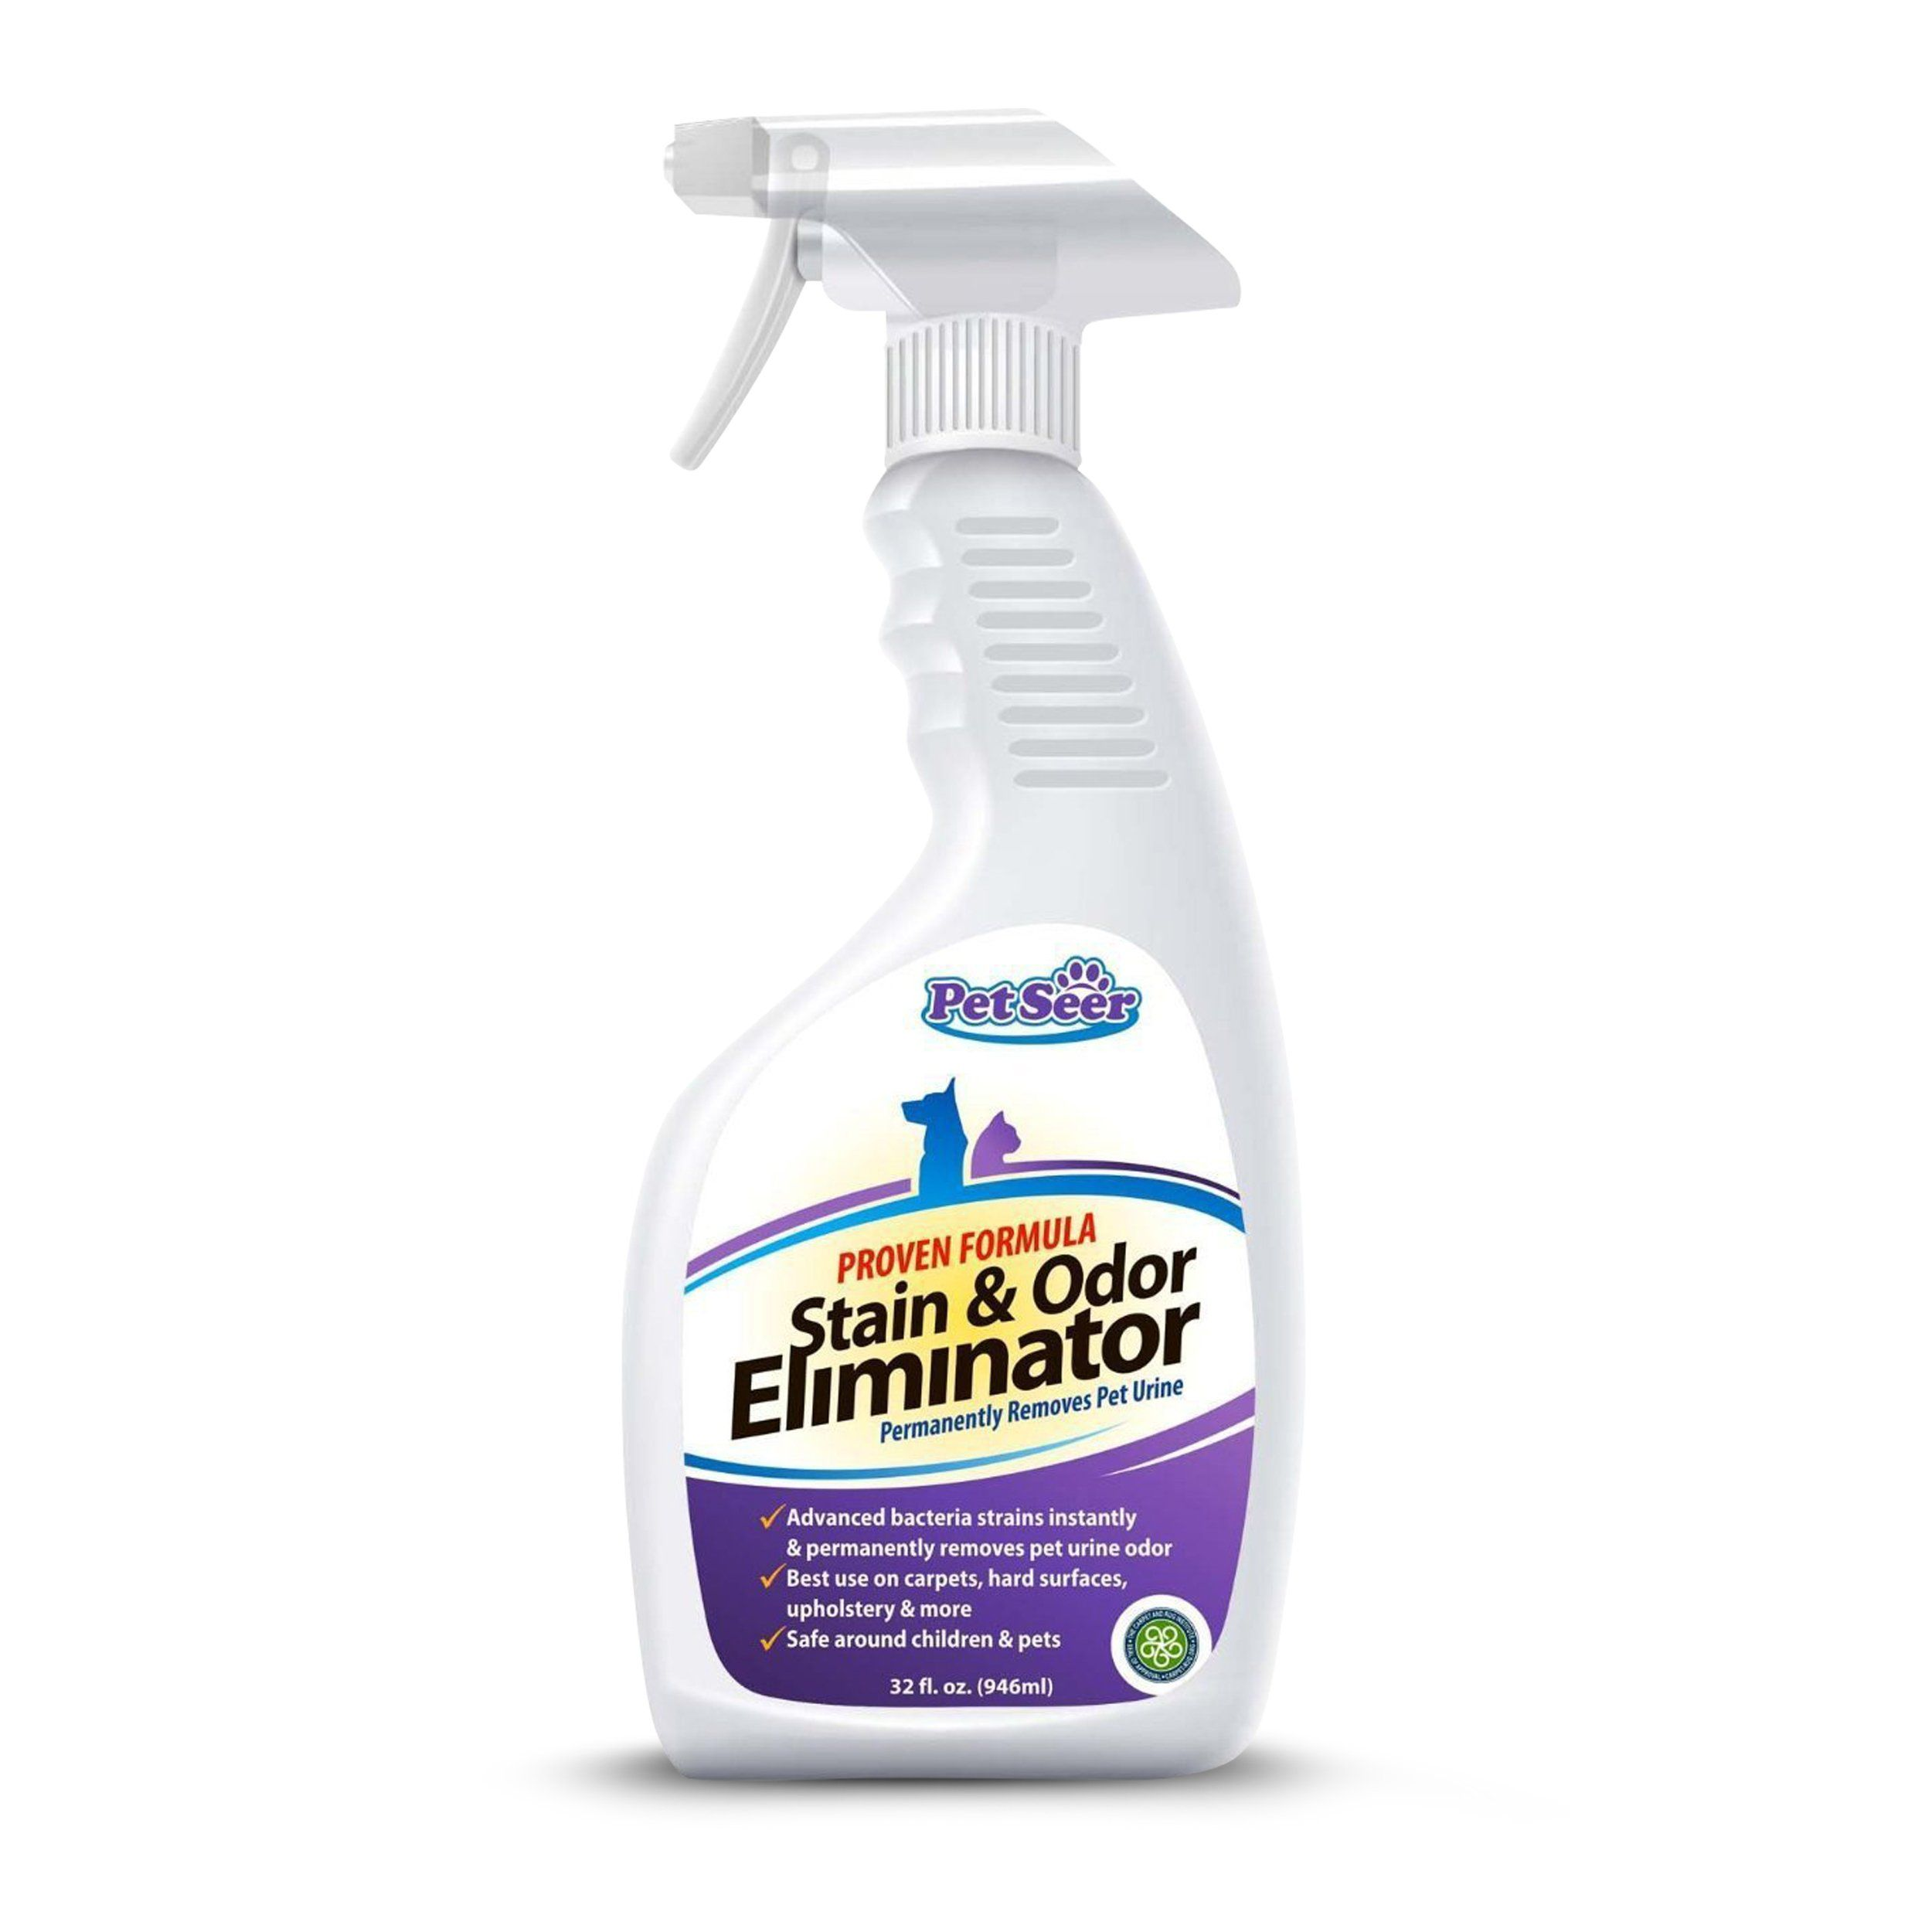 Pet Odor Stain Eliminator Is Specially Designed To Target The